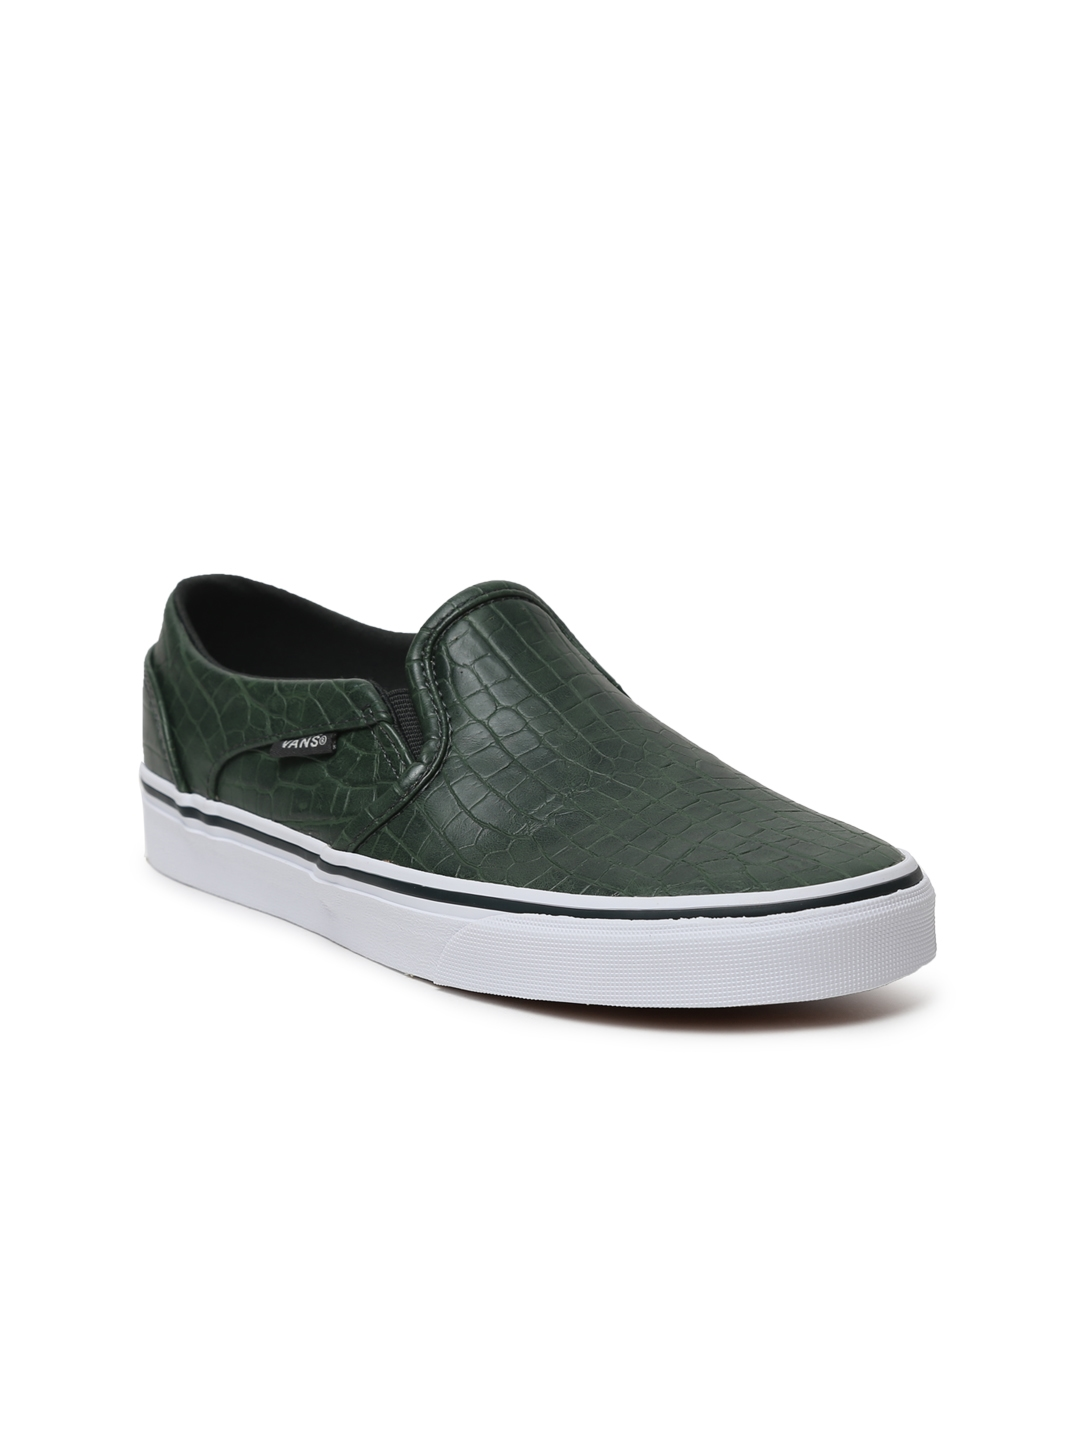 Buy Vans Women Green Asher Textured Slip On Sneakers - Casual Shoes ... 4e1697546